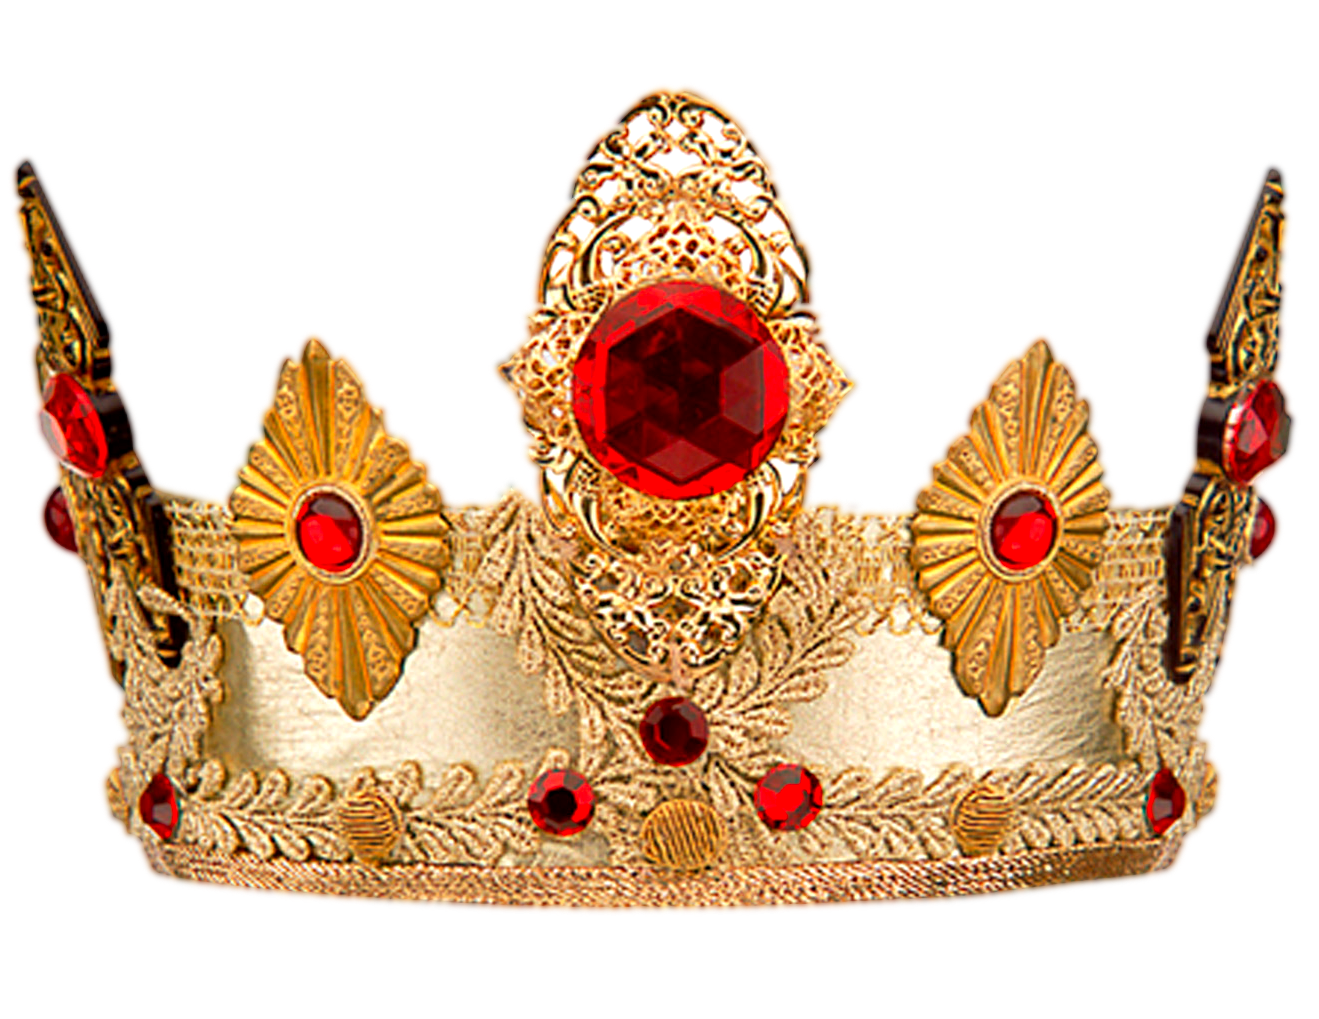 King and queen crowns png. Kings crown hd transparent